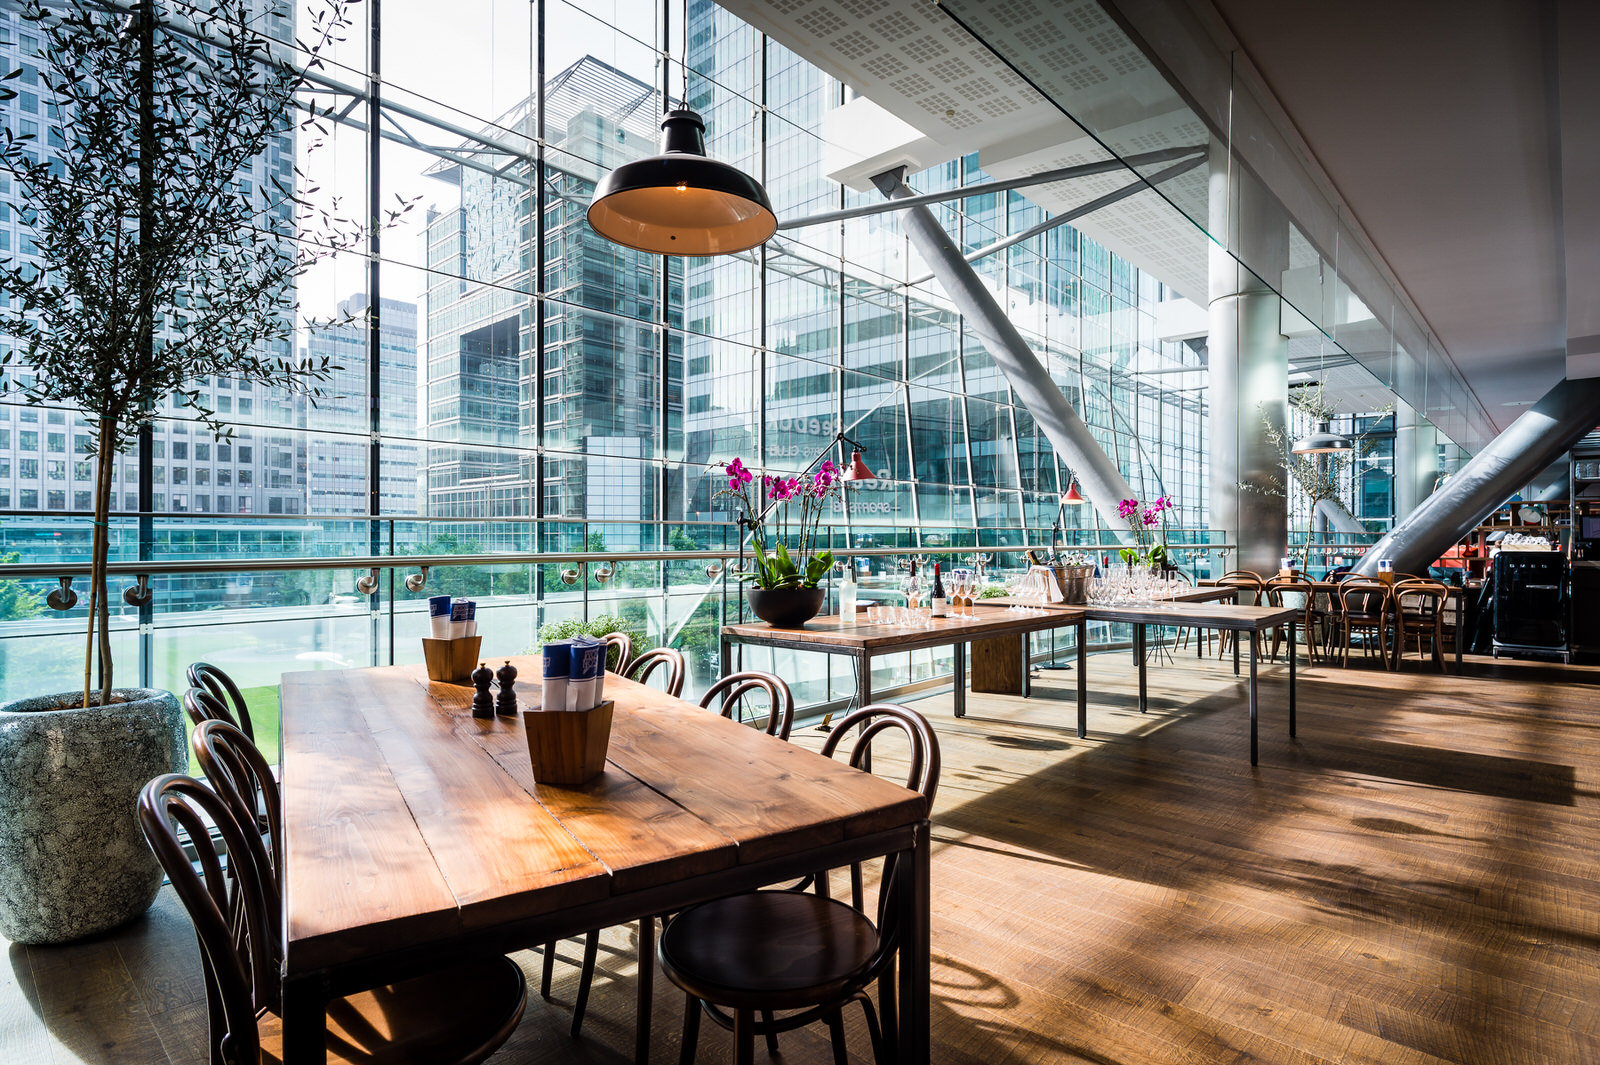 The Pearson Room Canary Wharf London